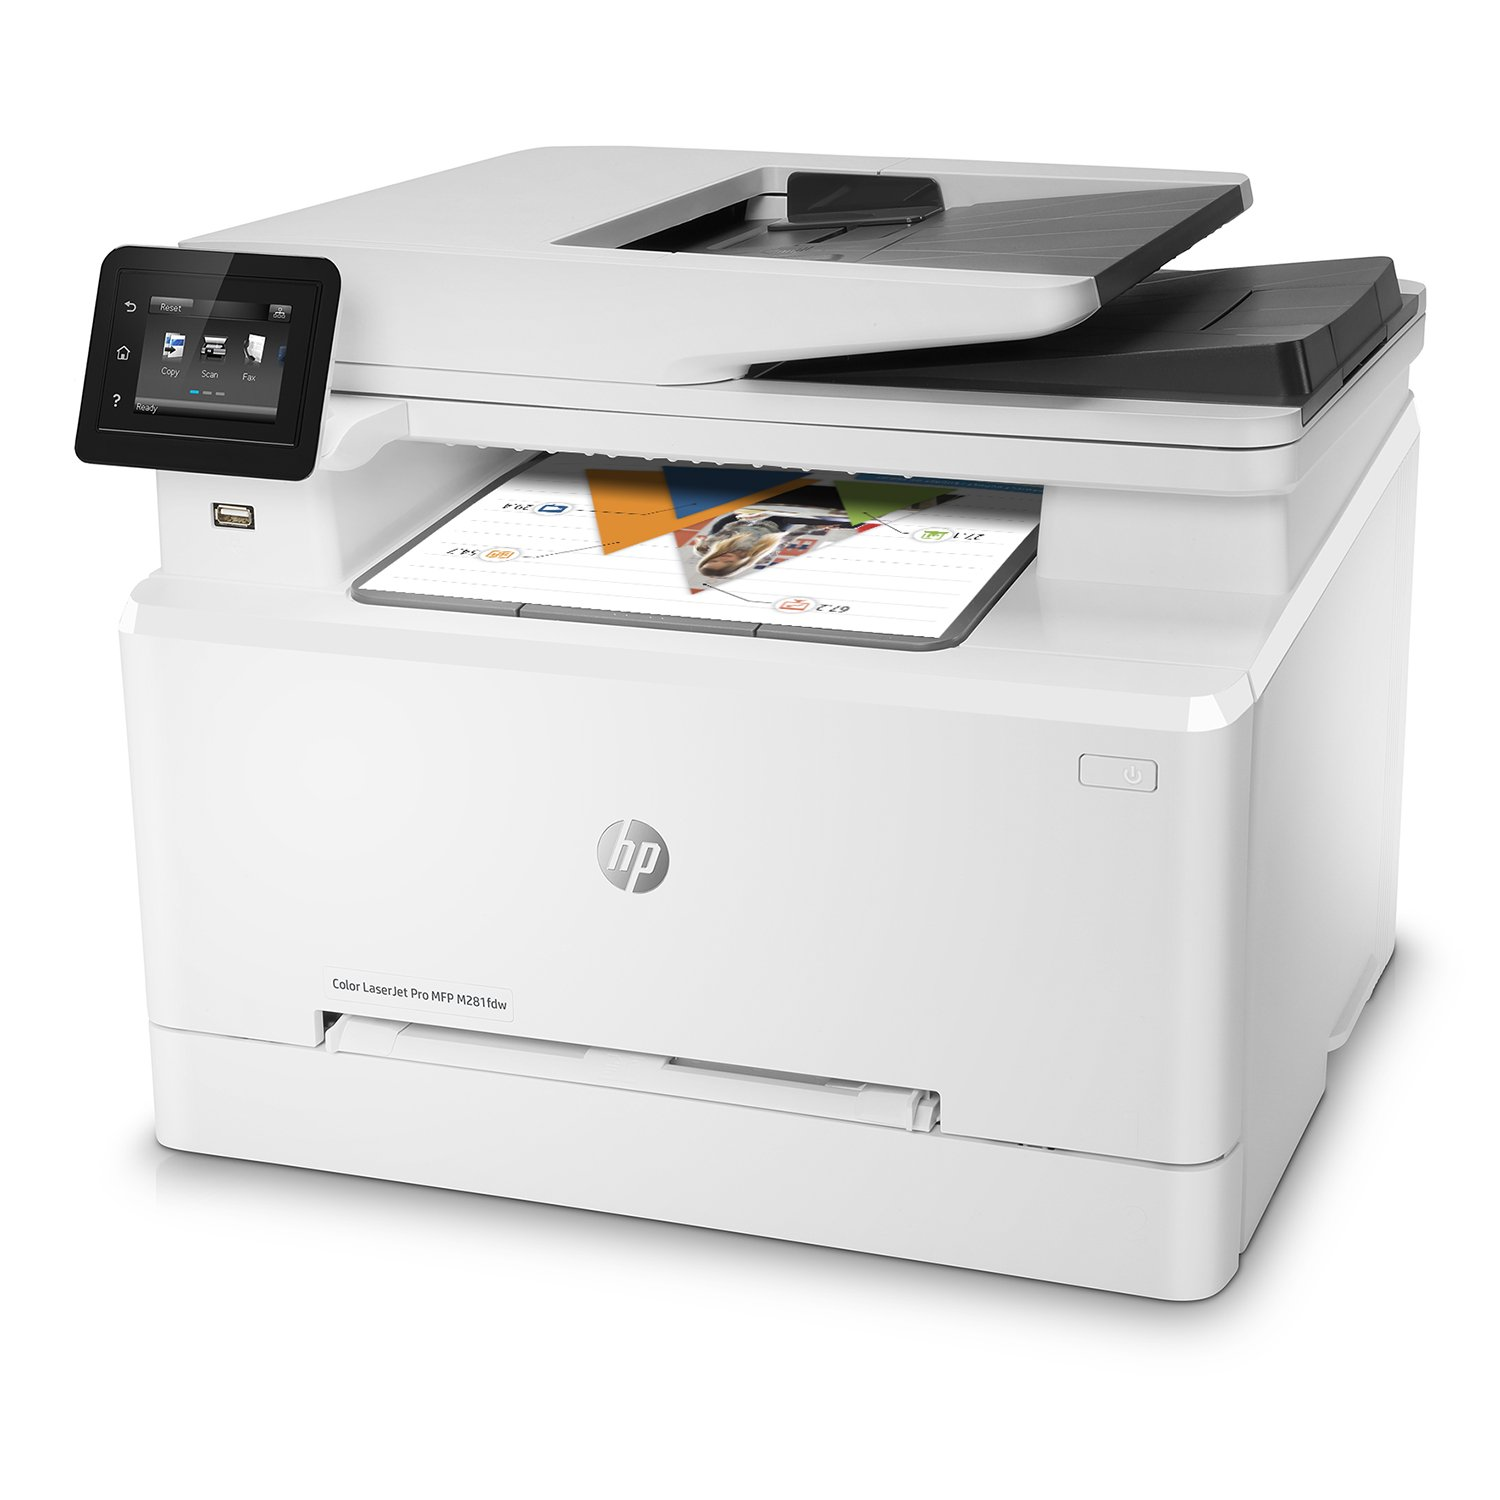 Amazon.com: HP Laserjet Pro M281fdw All in One Wireless Color Laser Printer,  Amazon Dash Replenishment Ready (T6B82A): Office Products